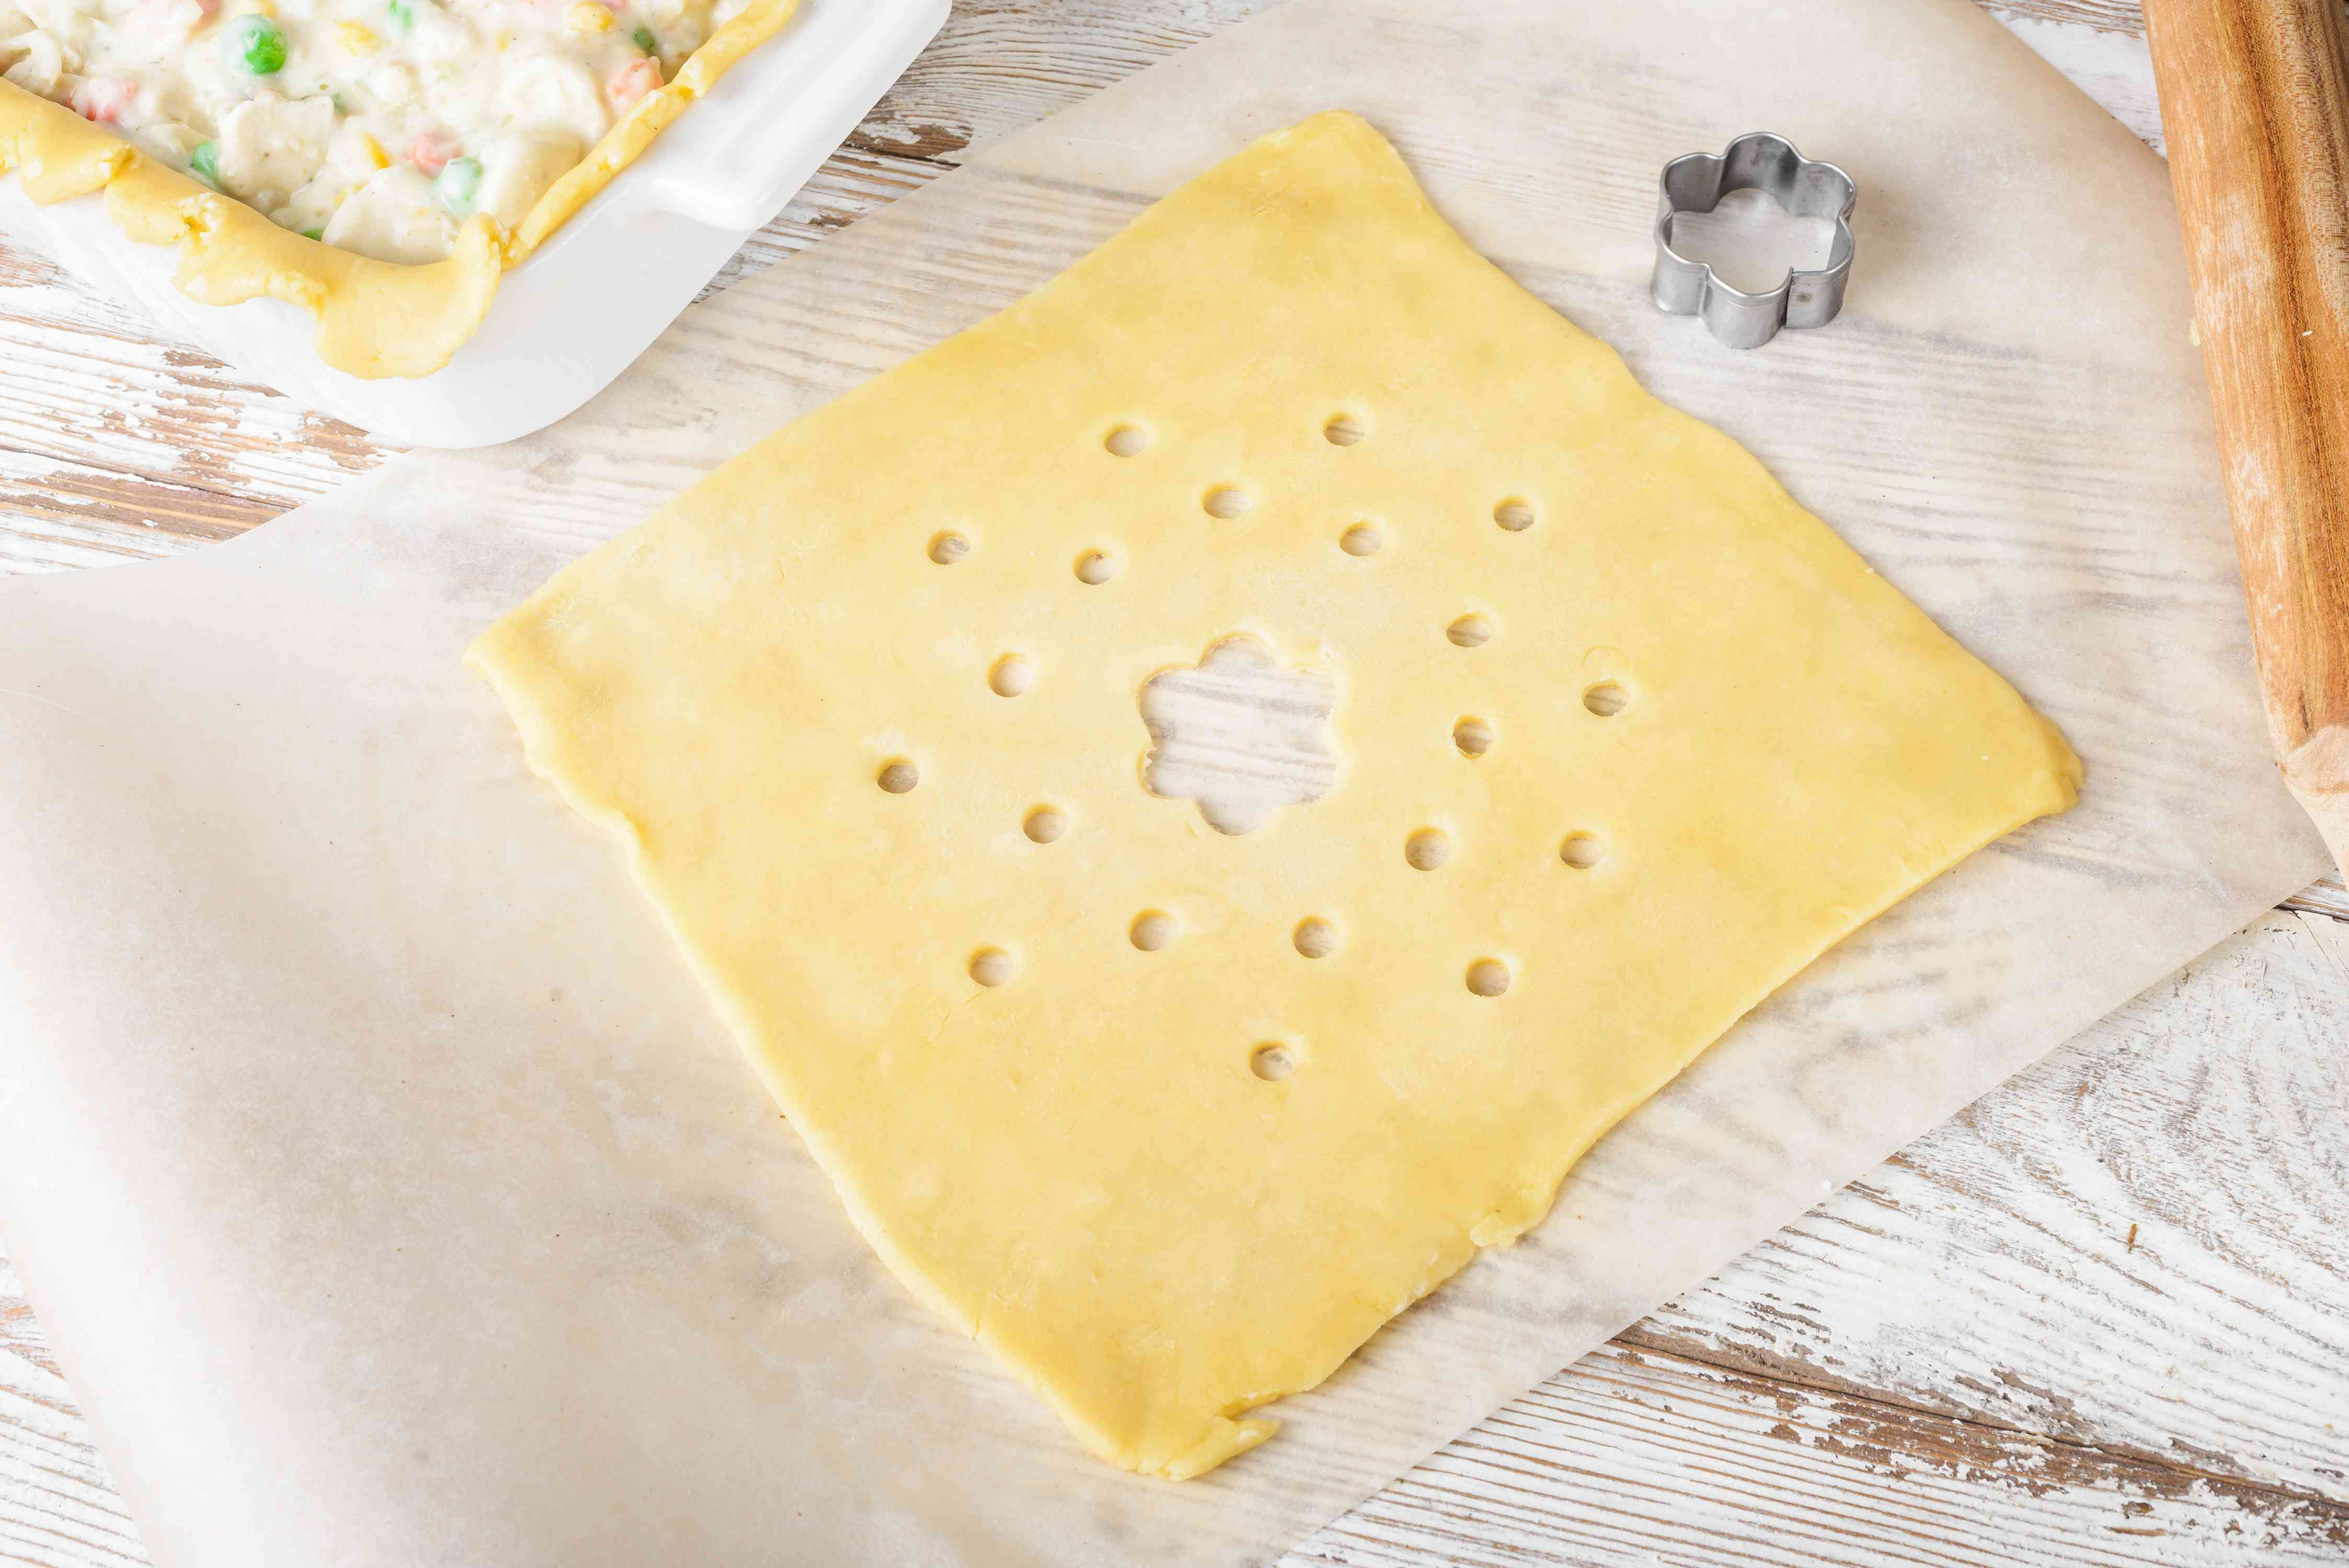 Roll pastry into square